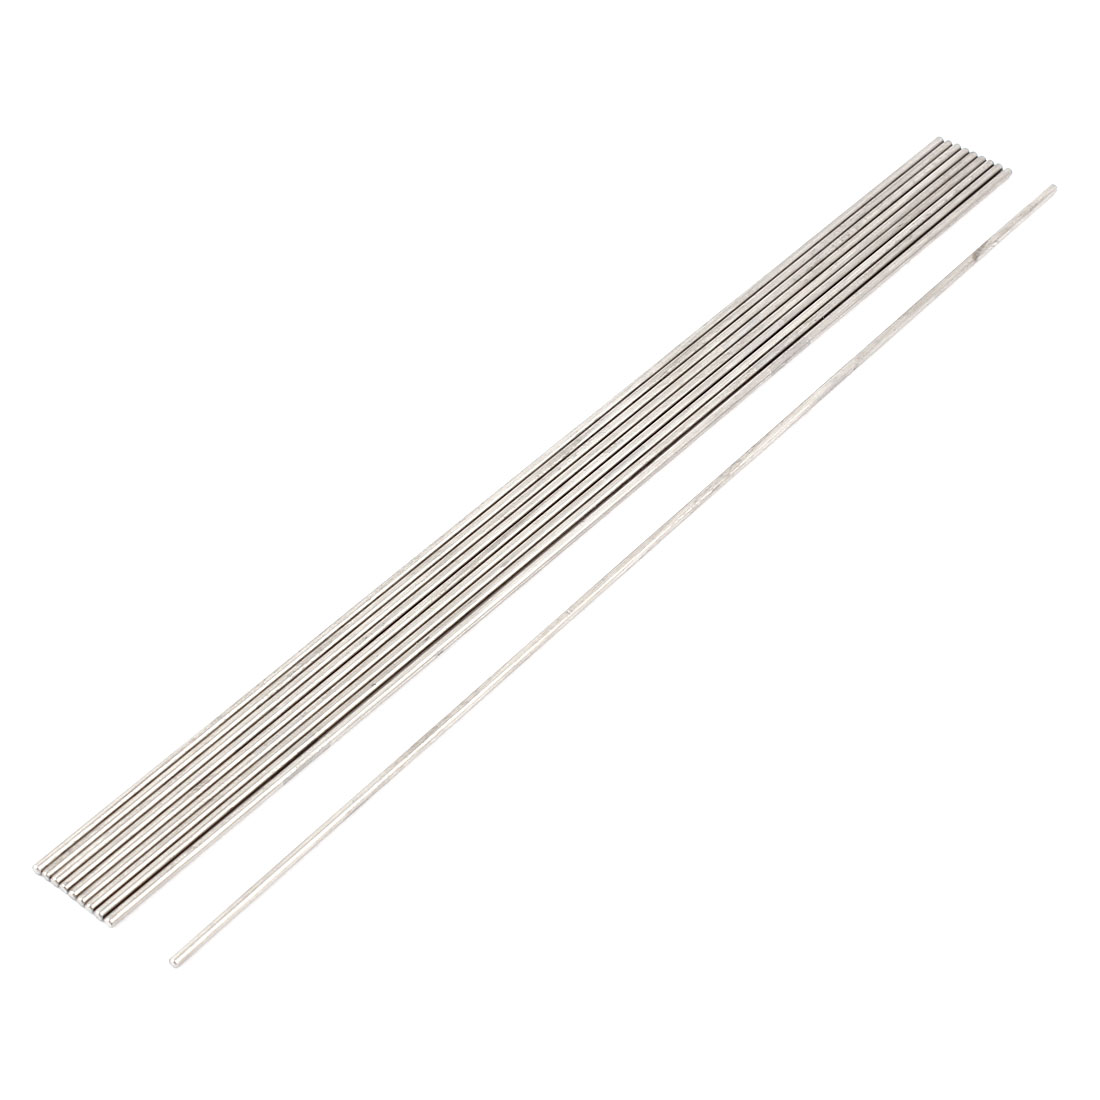 10 Pcs 2mm Dia 250mm Length Stainless Steel Solid Round Rod Bar for DIY RC Car